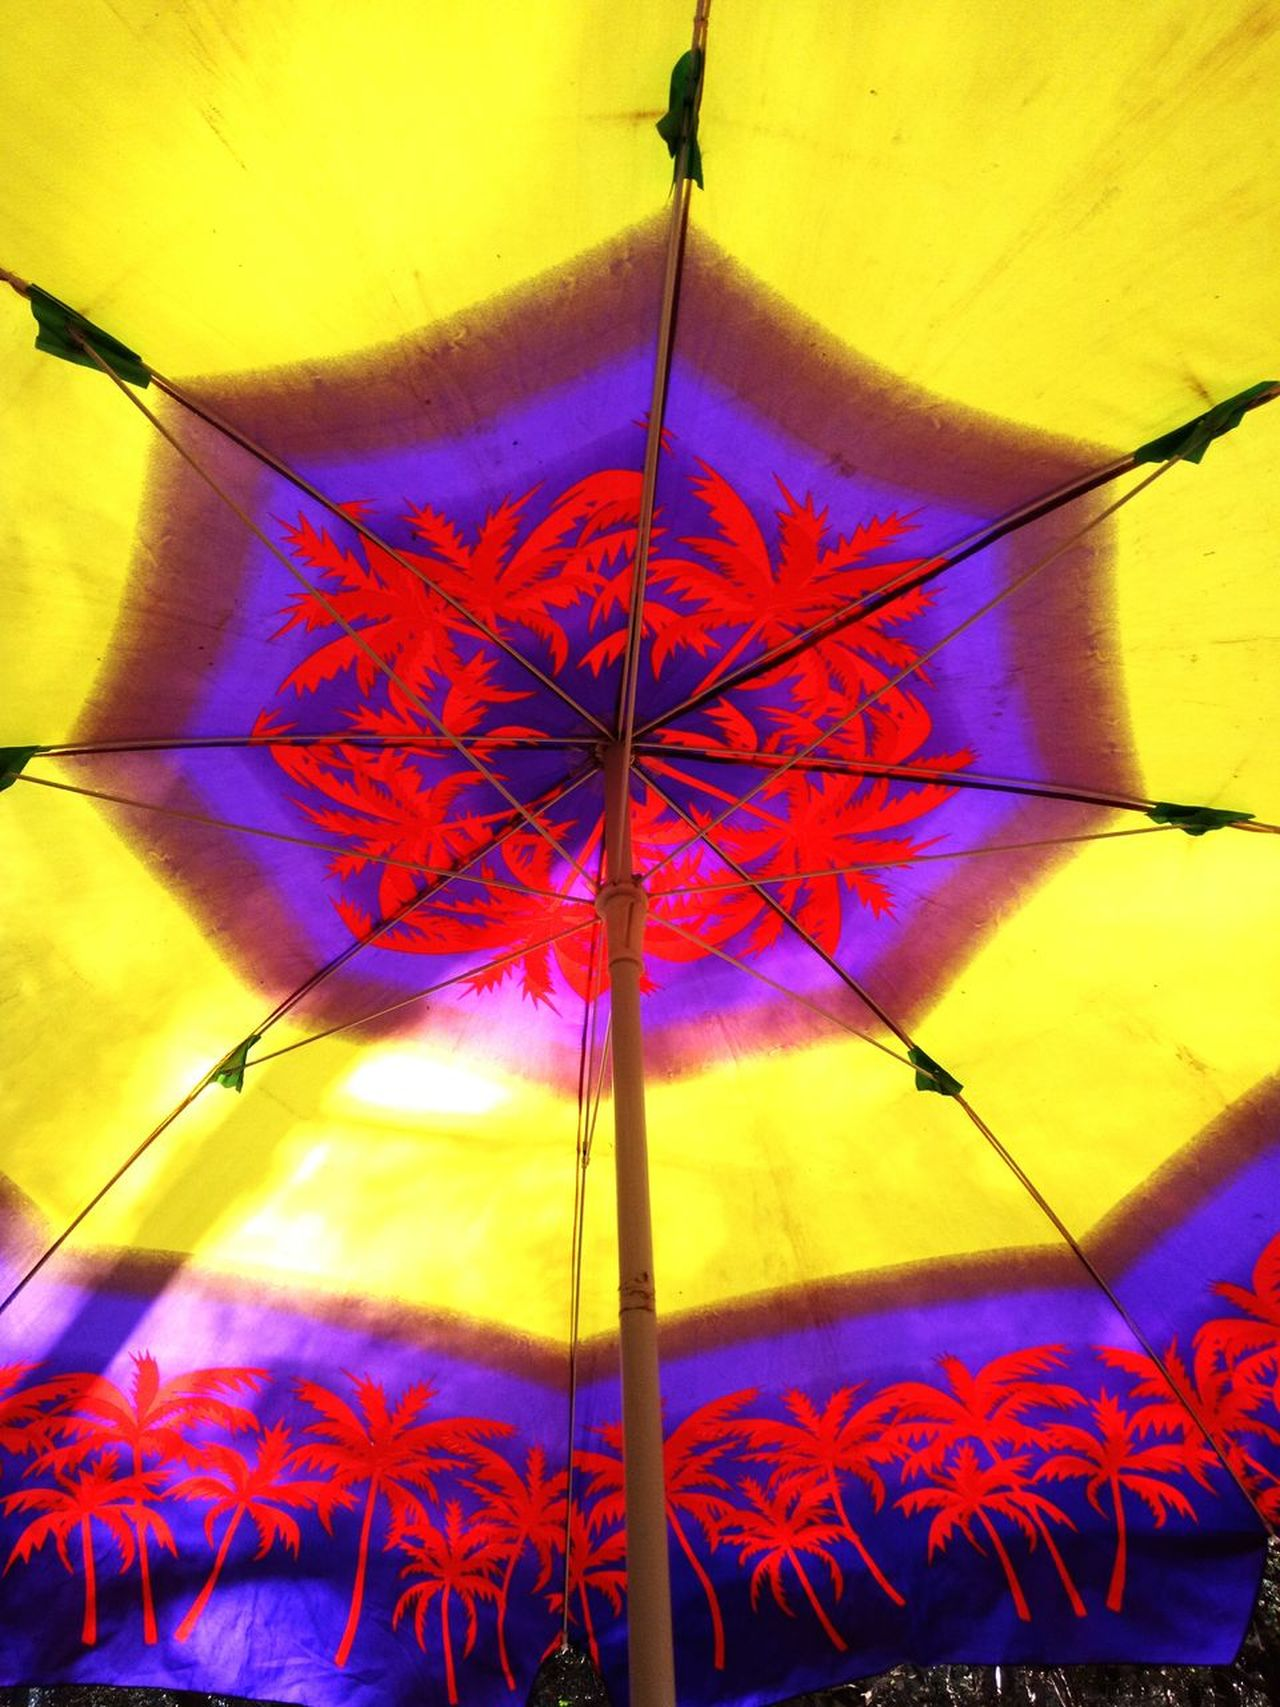 Multi Colored Cloud - Sky No People Day Tree Sky Close-up Nature Outdoors Standing Sunlight Umbrellas In The Sky Umbrella Art Umbrellas Act Decorations Umbrella☂☂